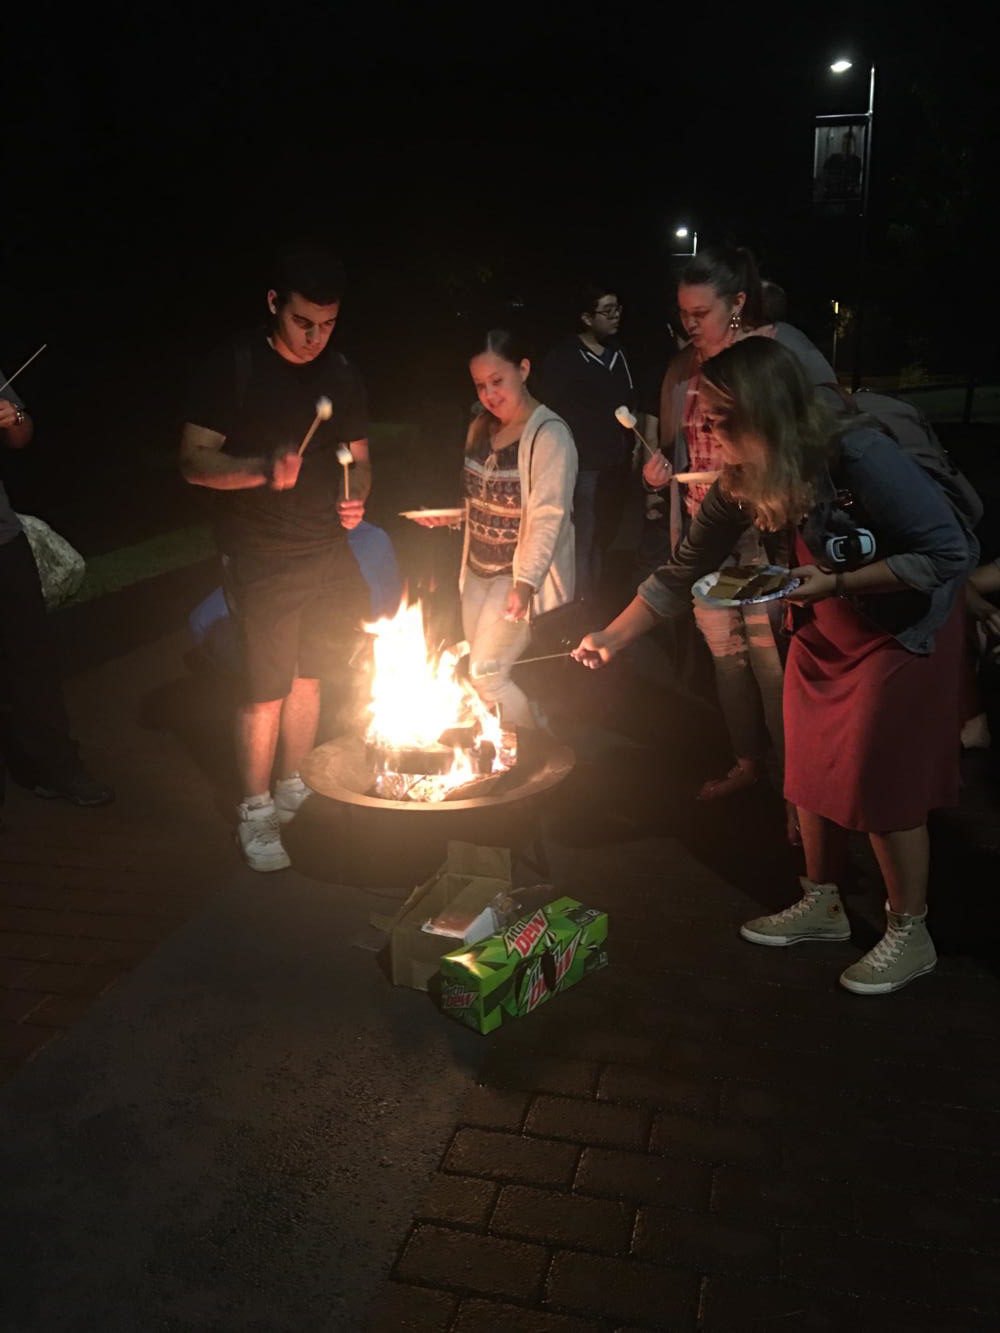 Students preparing to roast their marshmallows and make S'mores